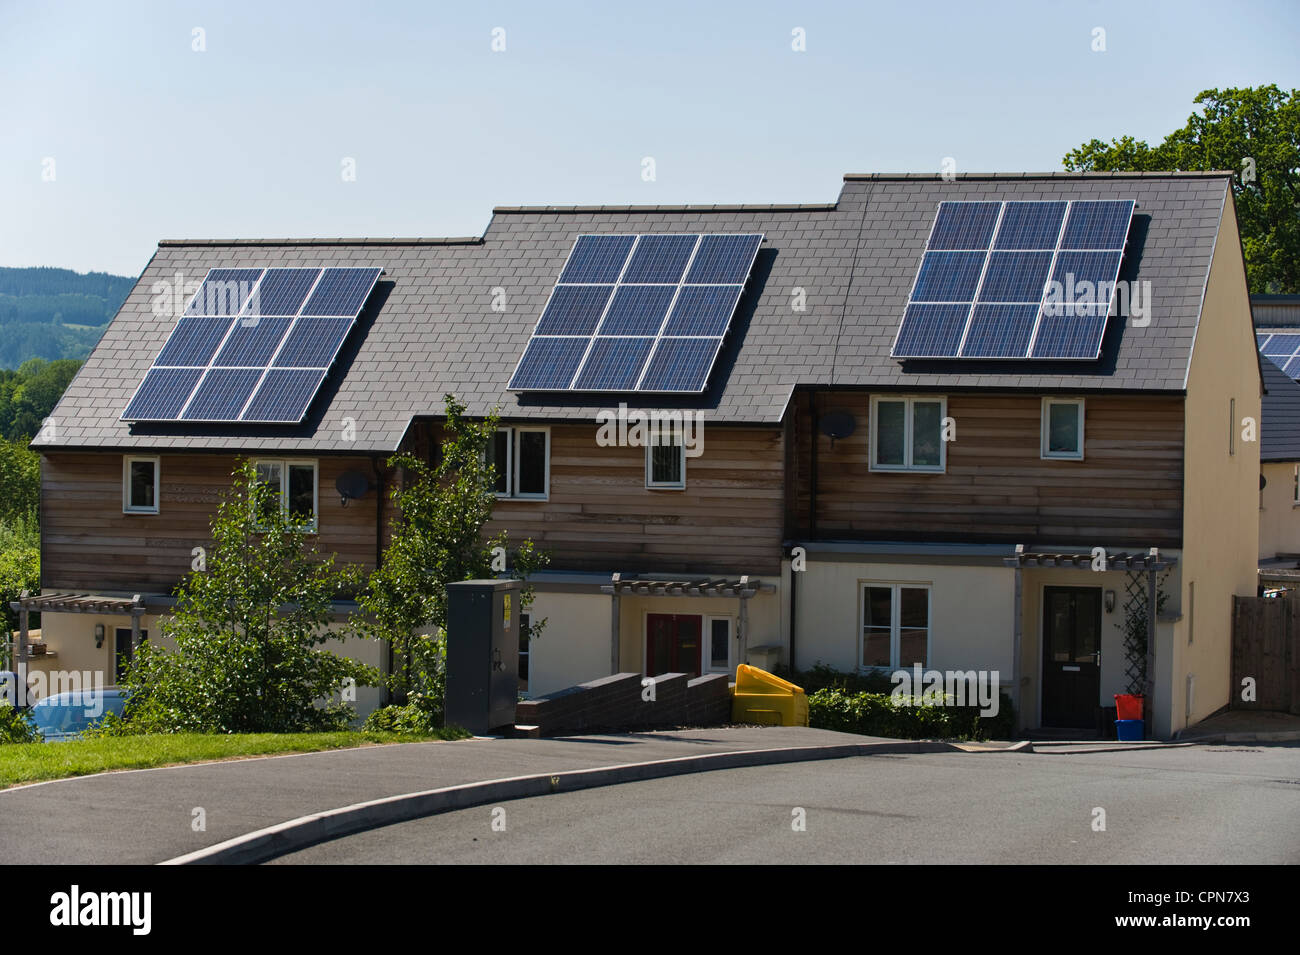 New Homes With Solar Panels